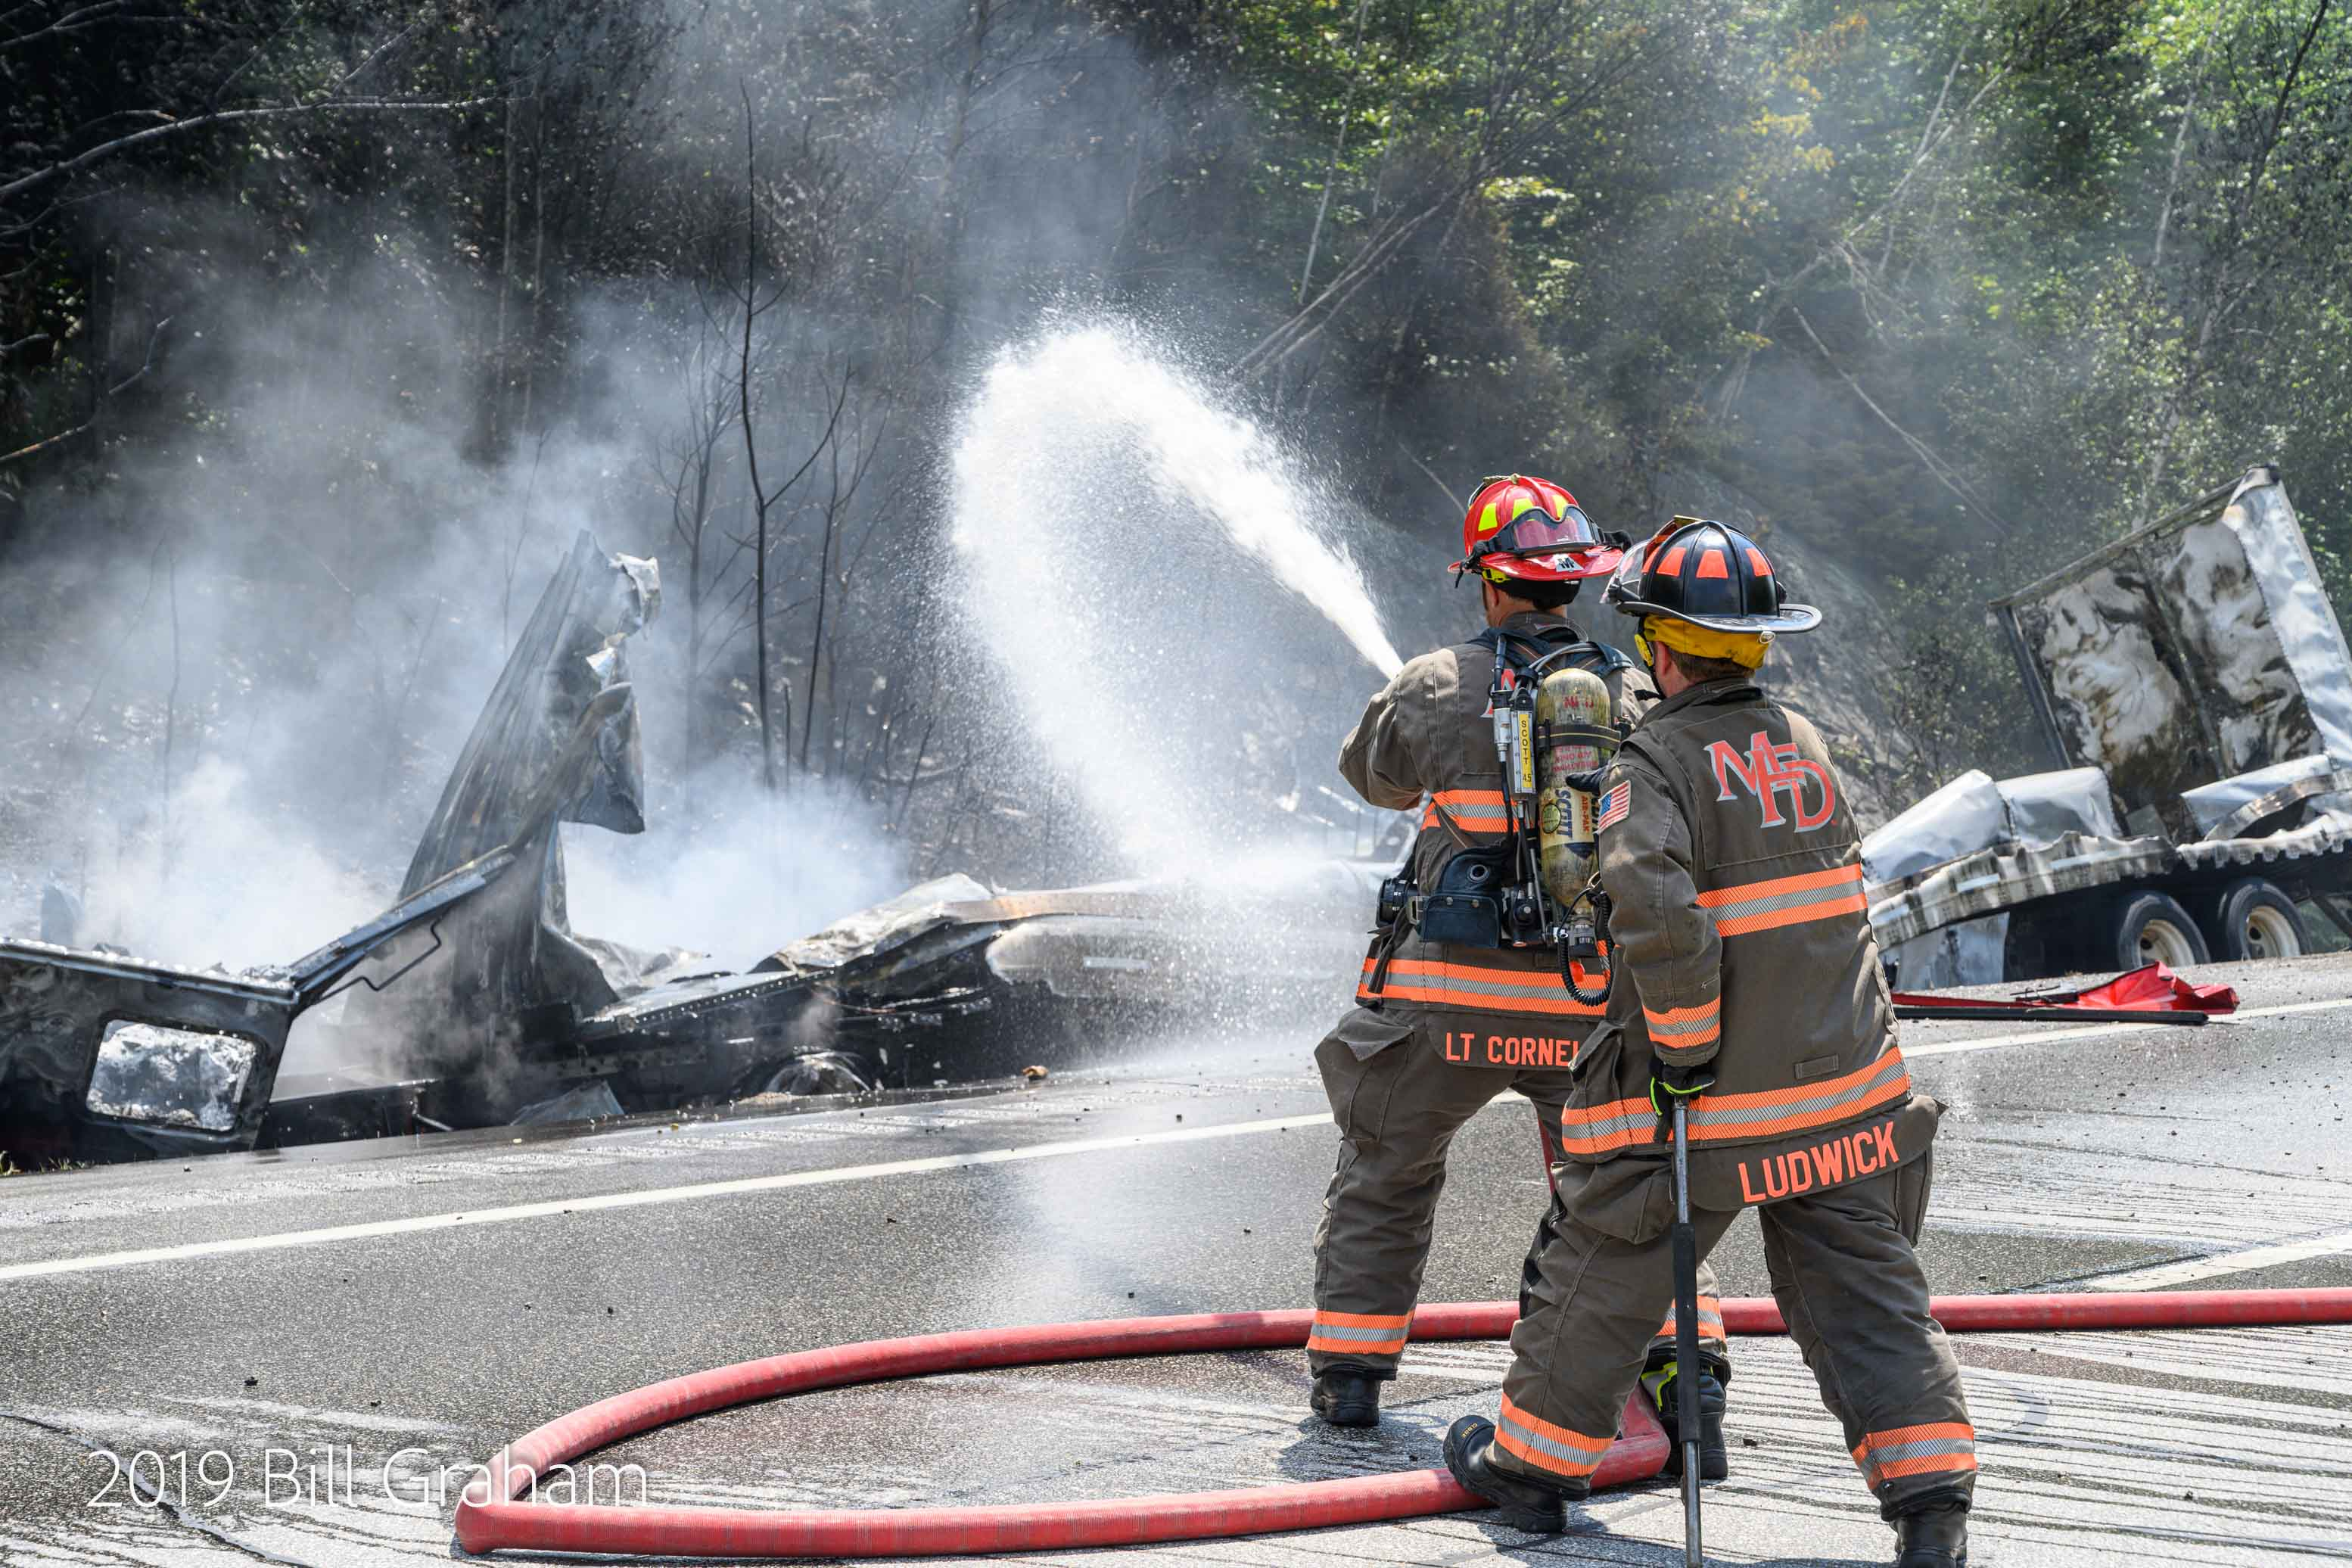 Truck crash starts fire on I-93 north in New Hampshire - The